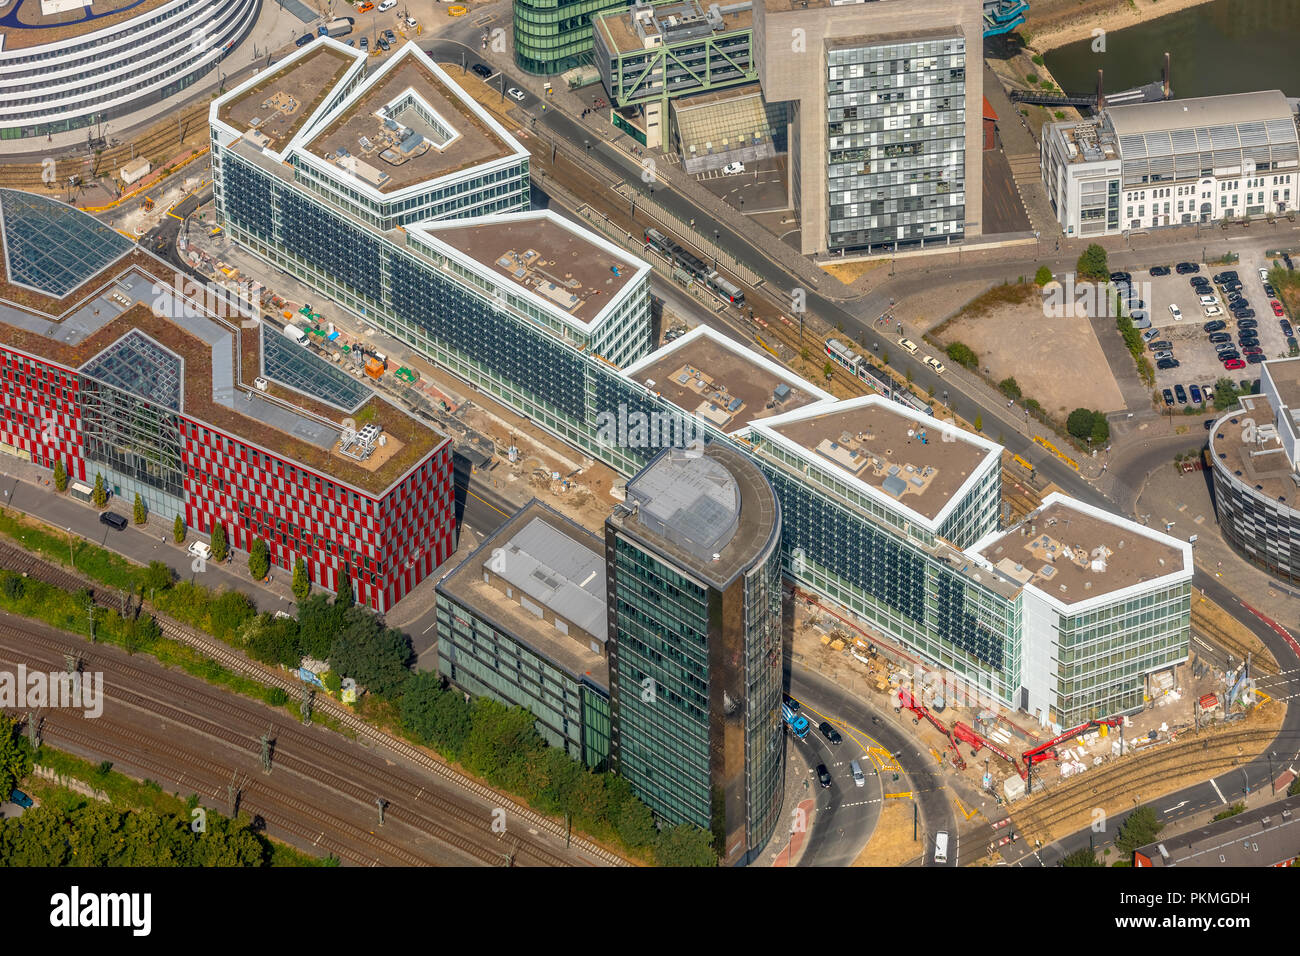 Aerial view, Construction site for the construction of an office and commercial building FLOAT Holzstraße in Düsseldorf Stock Photo